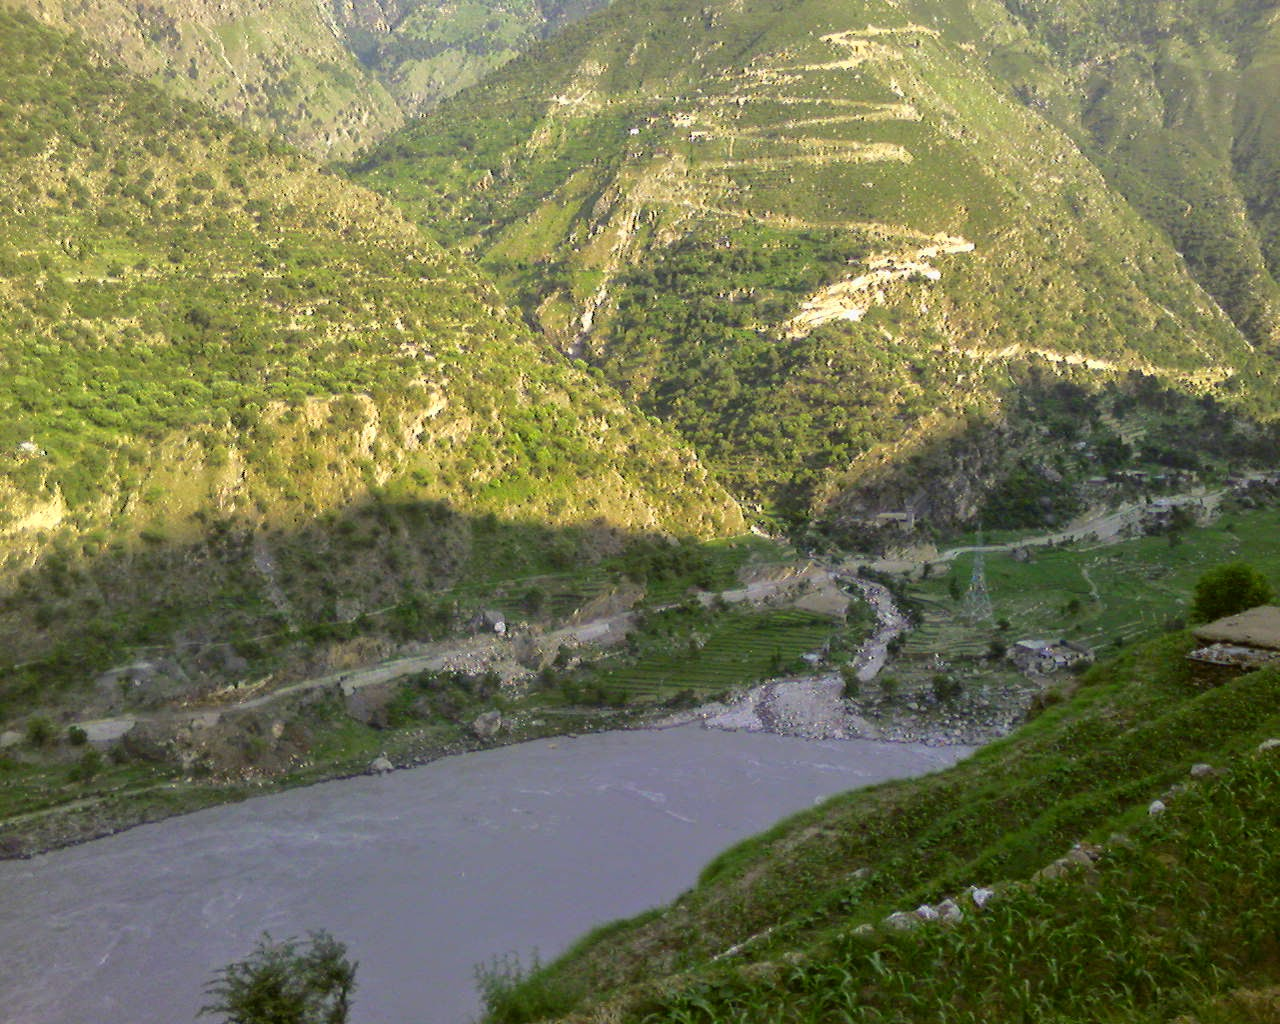 The first glimpse of Indus